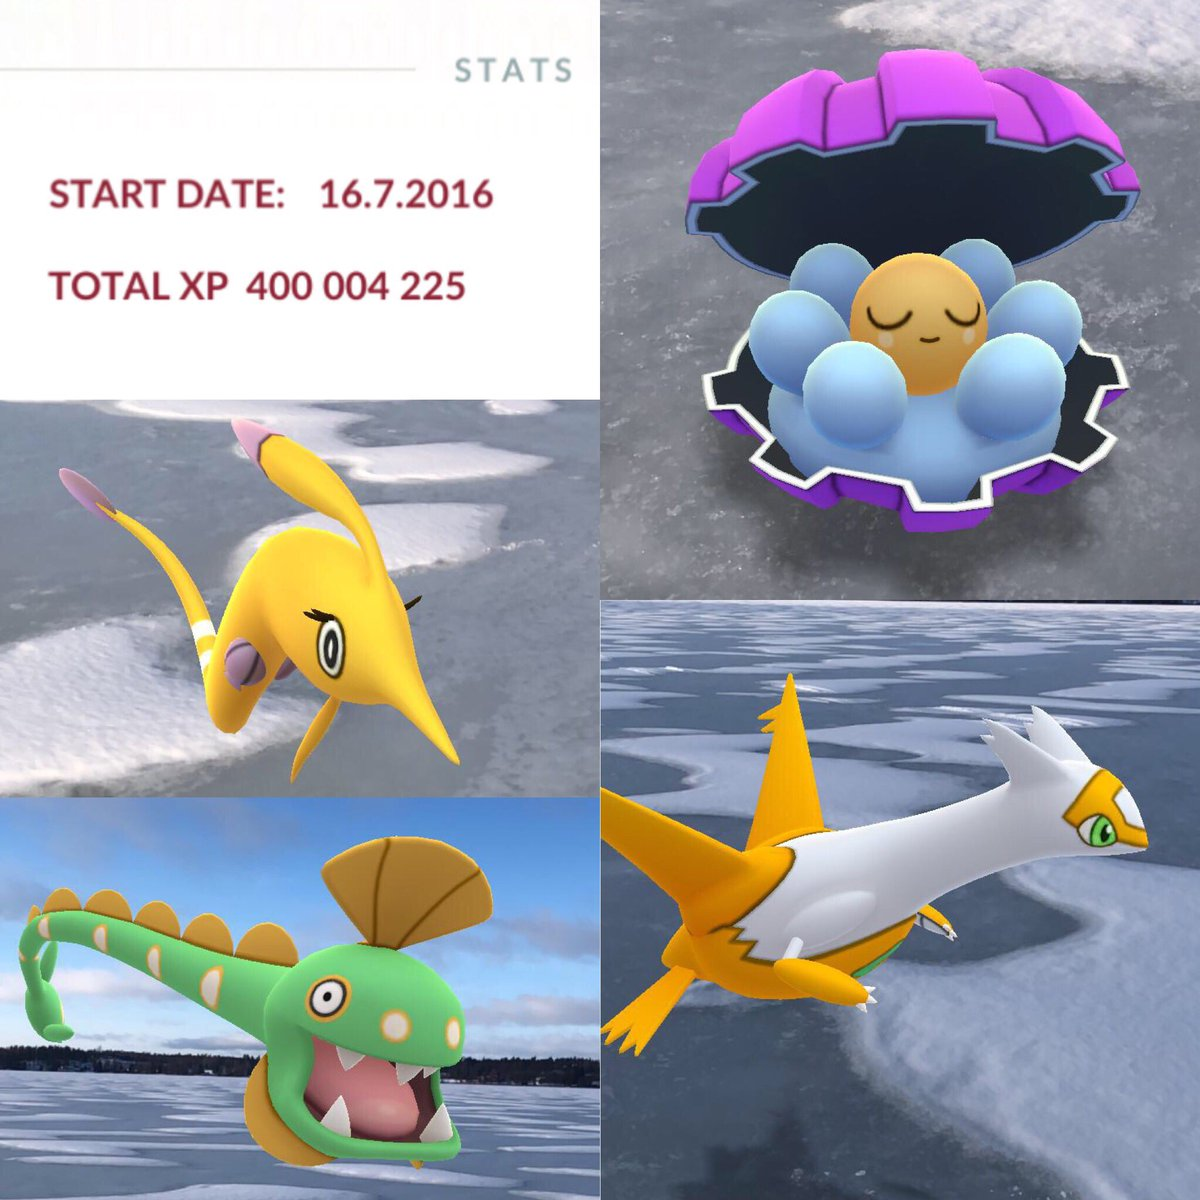 TL40x20 and four new shinies #pokemonGO #casualSaturday<br>http://pic.twitter.com/WSWz0ZcV8y